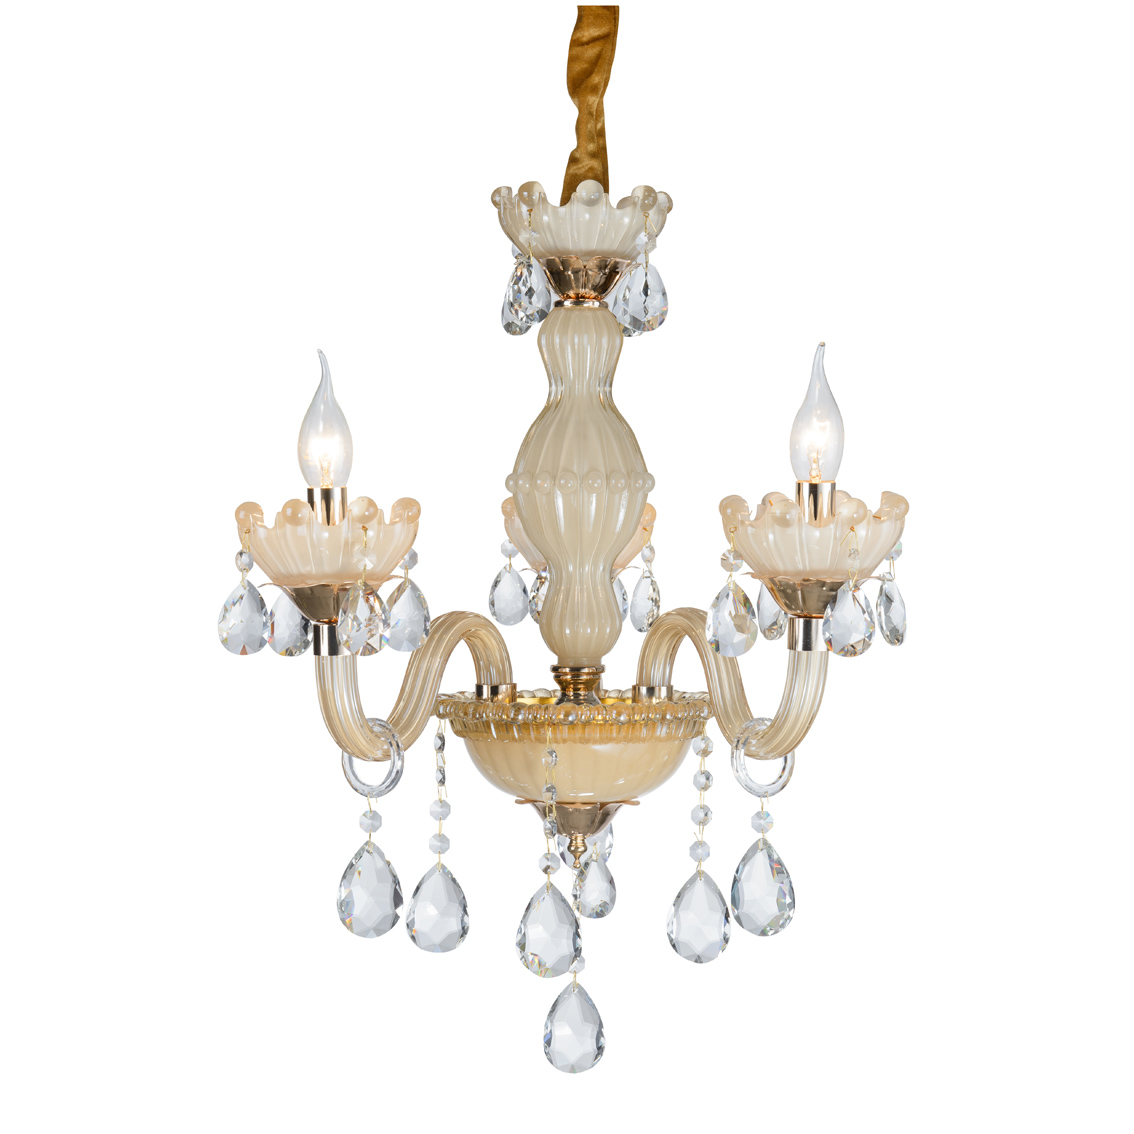 Chandelier ceiling Crystal golden drops Transparent 3 Arms 2072-3